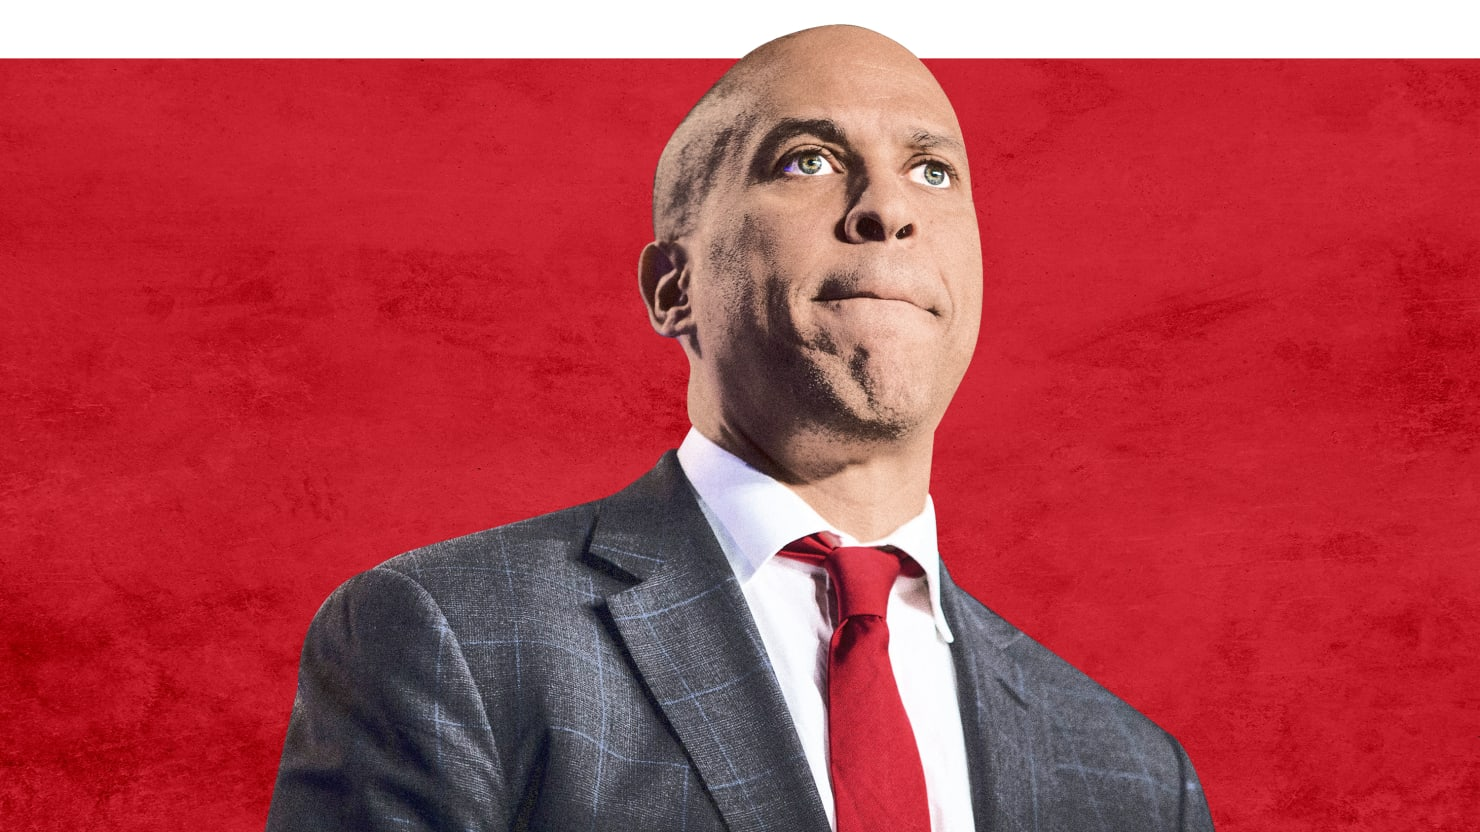 Cory 'Radical Love' Booker Gets Aggressive With His 2020 Democratic Rivals